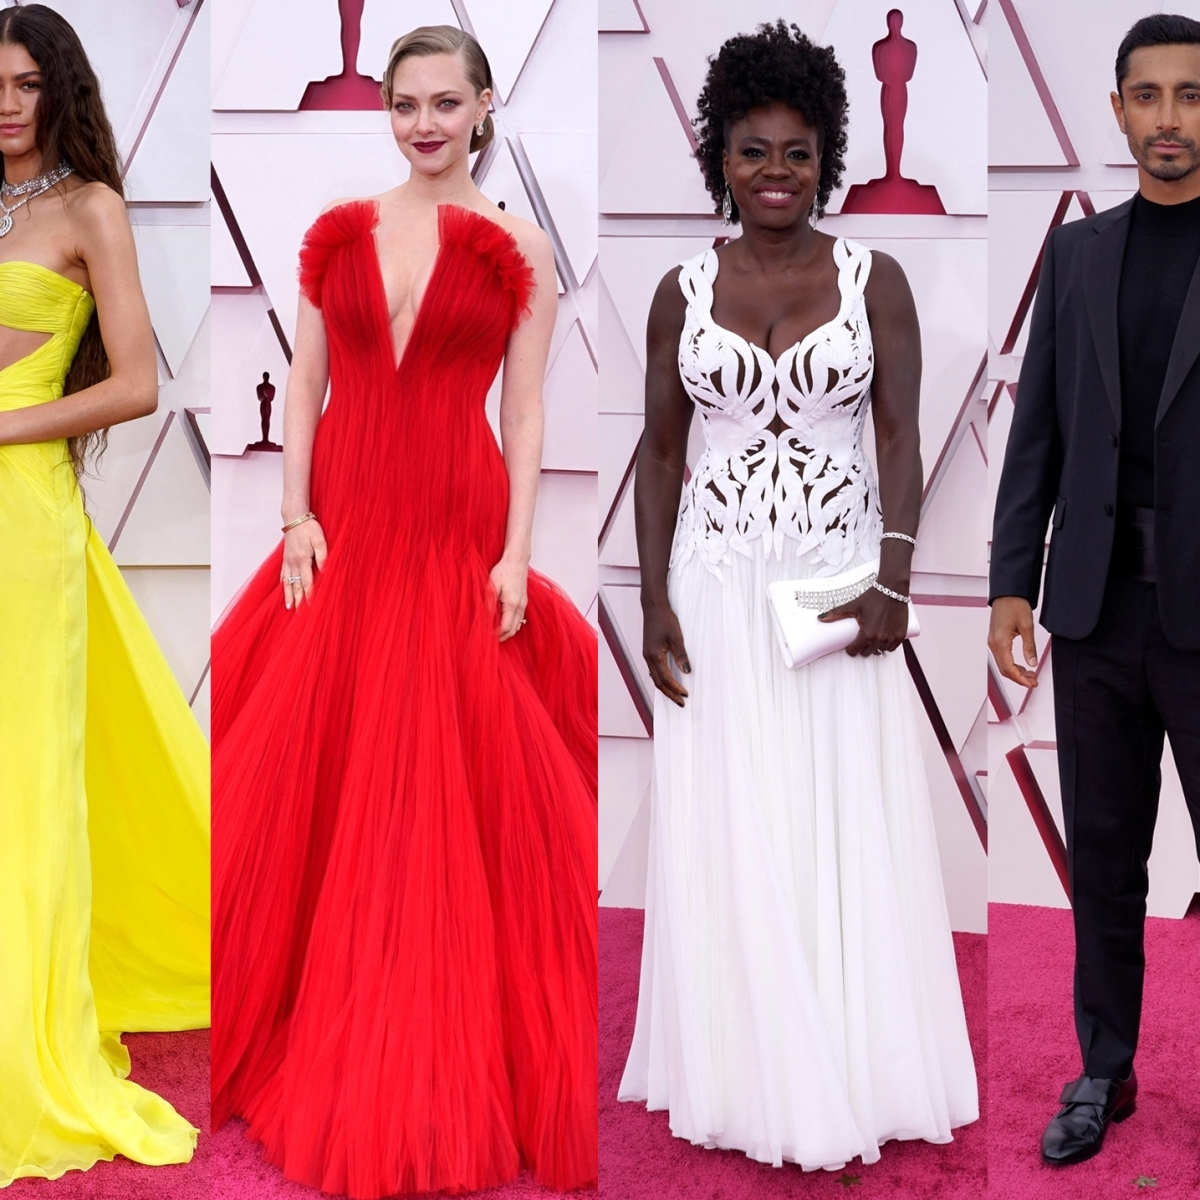 Oscars 2021 Red Carpet: Best and worst dressed celebs at the 93rd annual Academy Awards